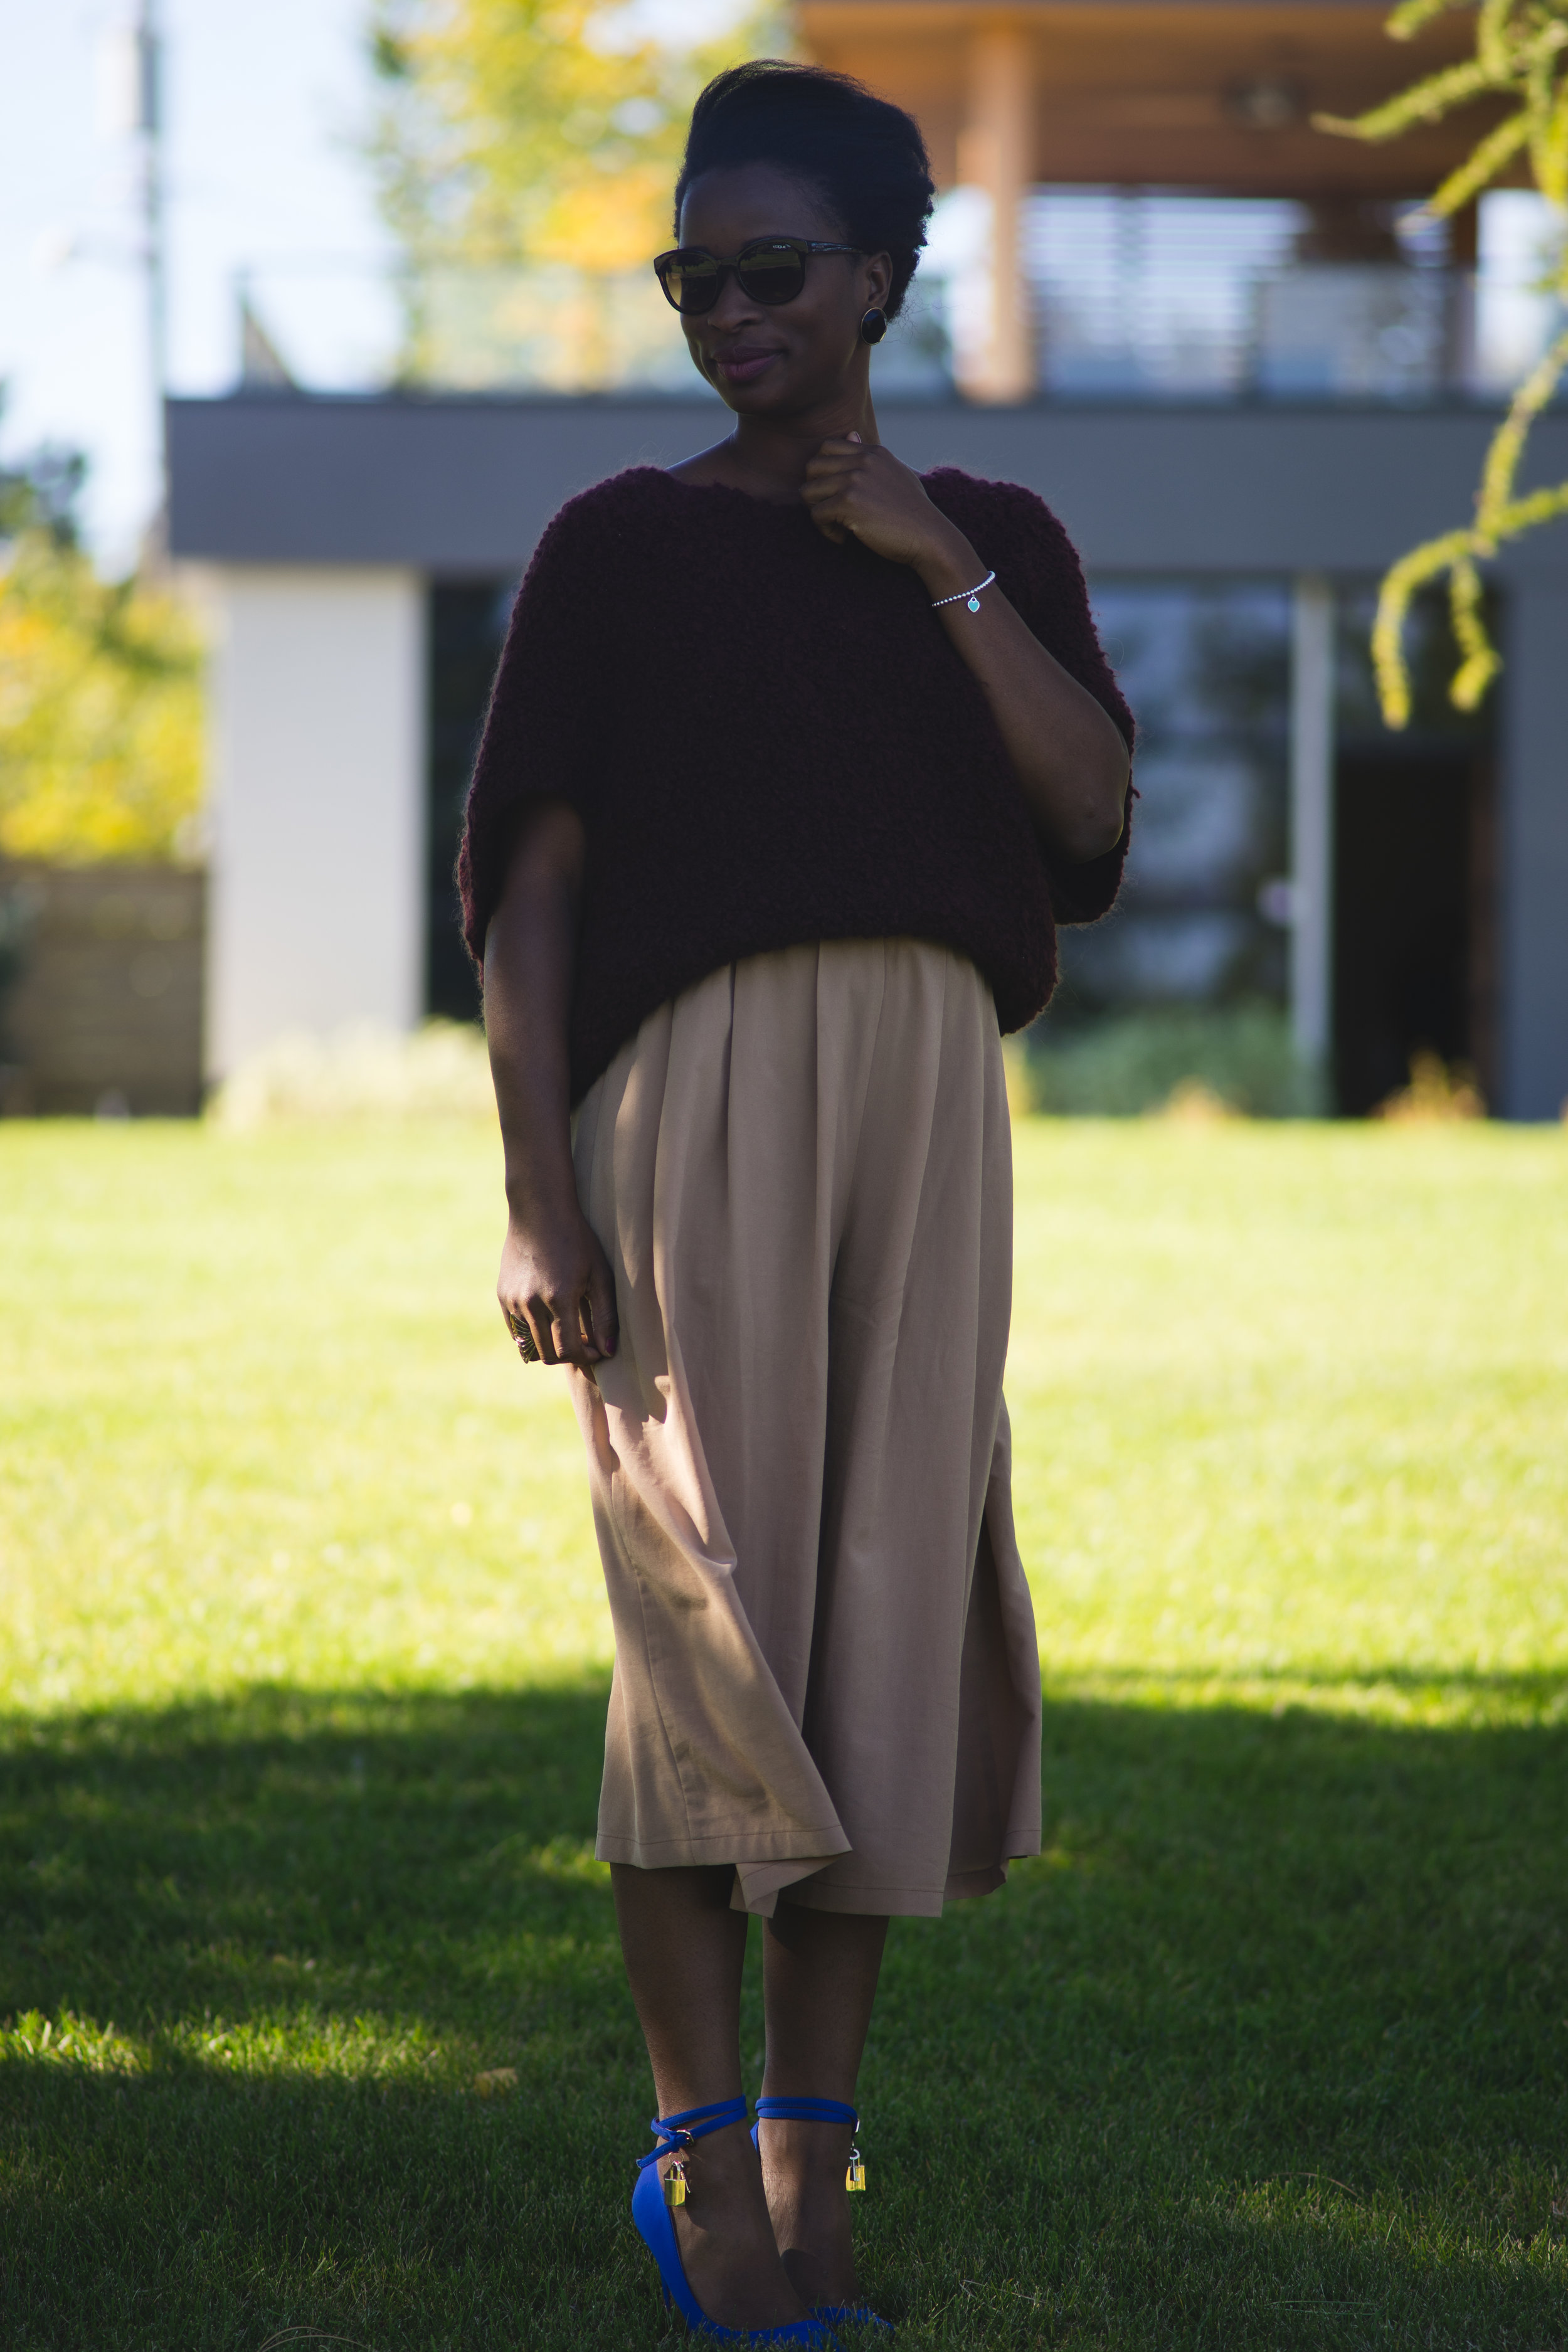 "Elegant and sophisticated outfit: personal stylist is Knit Me Up from Calgary Alberta. Burgundy short sleeve sweater, styled with culottes from Japan. Personal stylist Sade Babatunde designed this look with your ""typical classy girl"" in mind! Very fashion forward and yet approachable!"